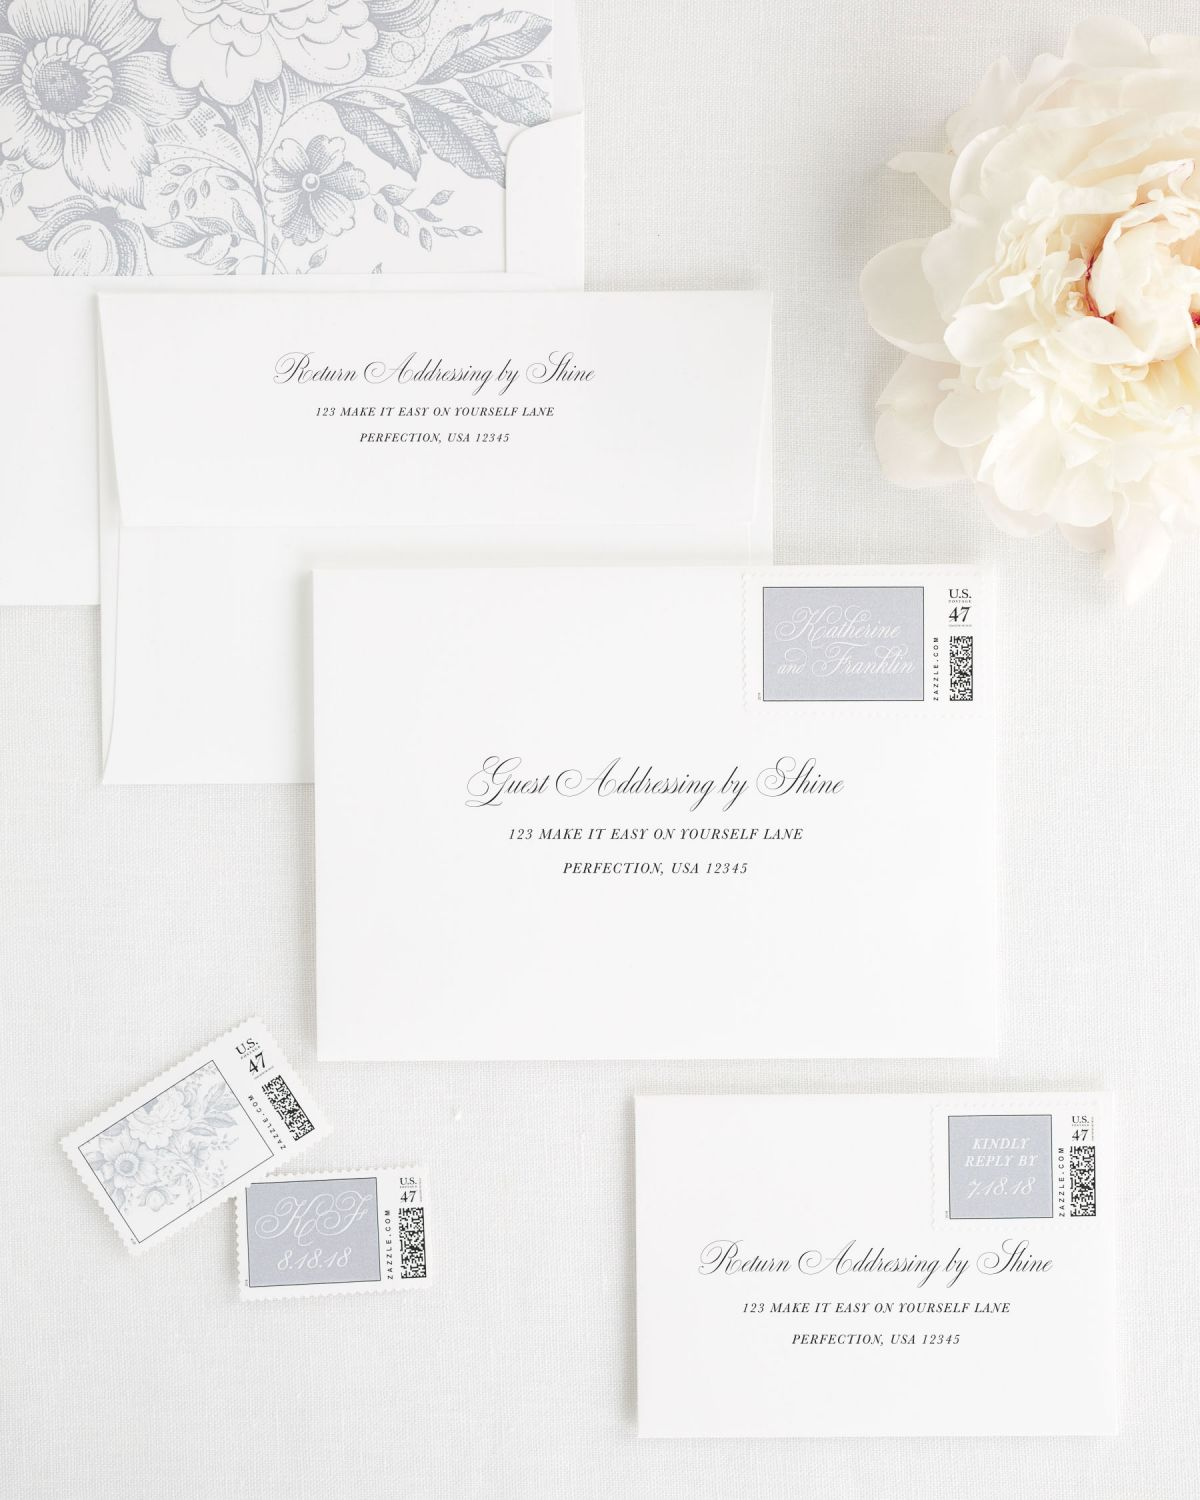 Wedding Invitation Envelopes with Guest Addressing and Matching Stamps